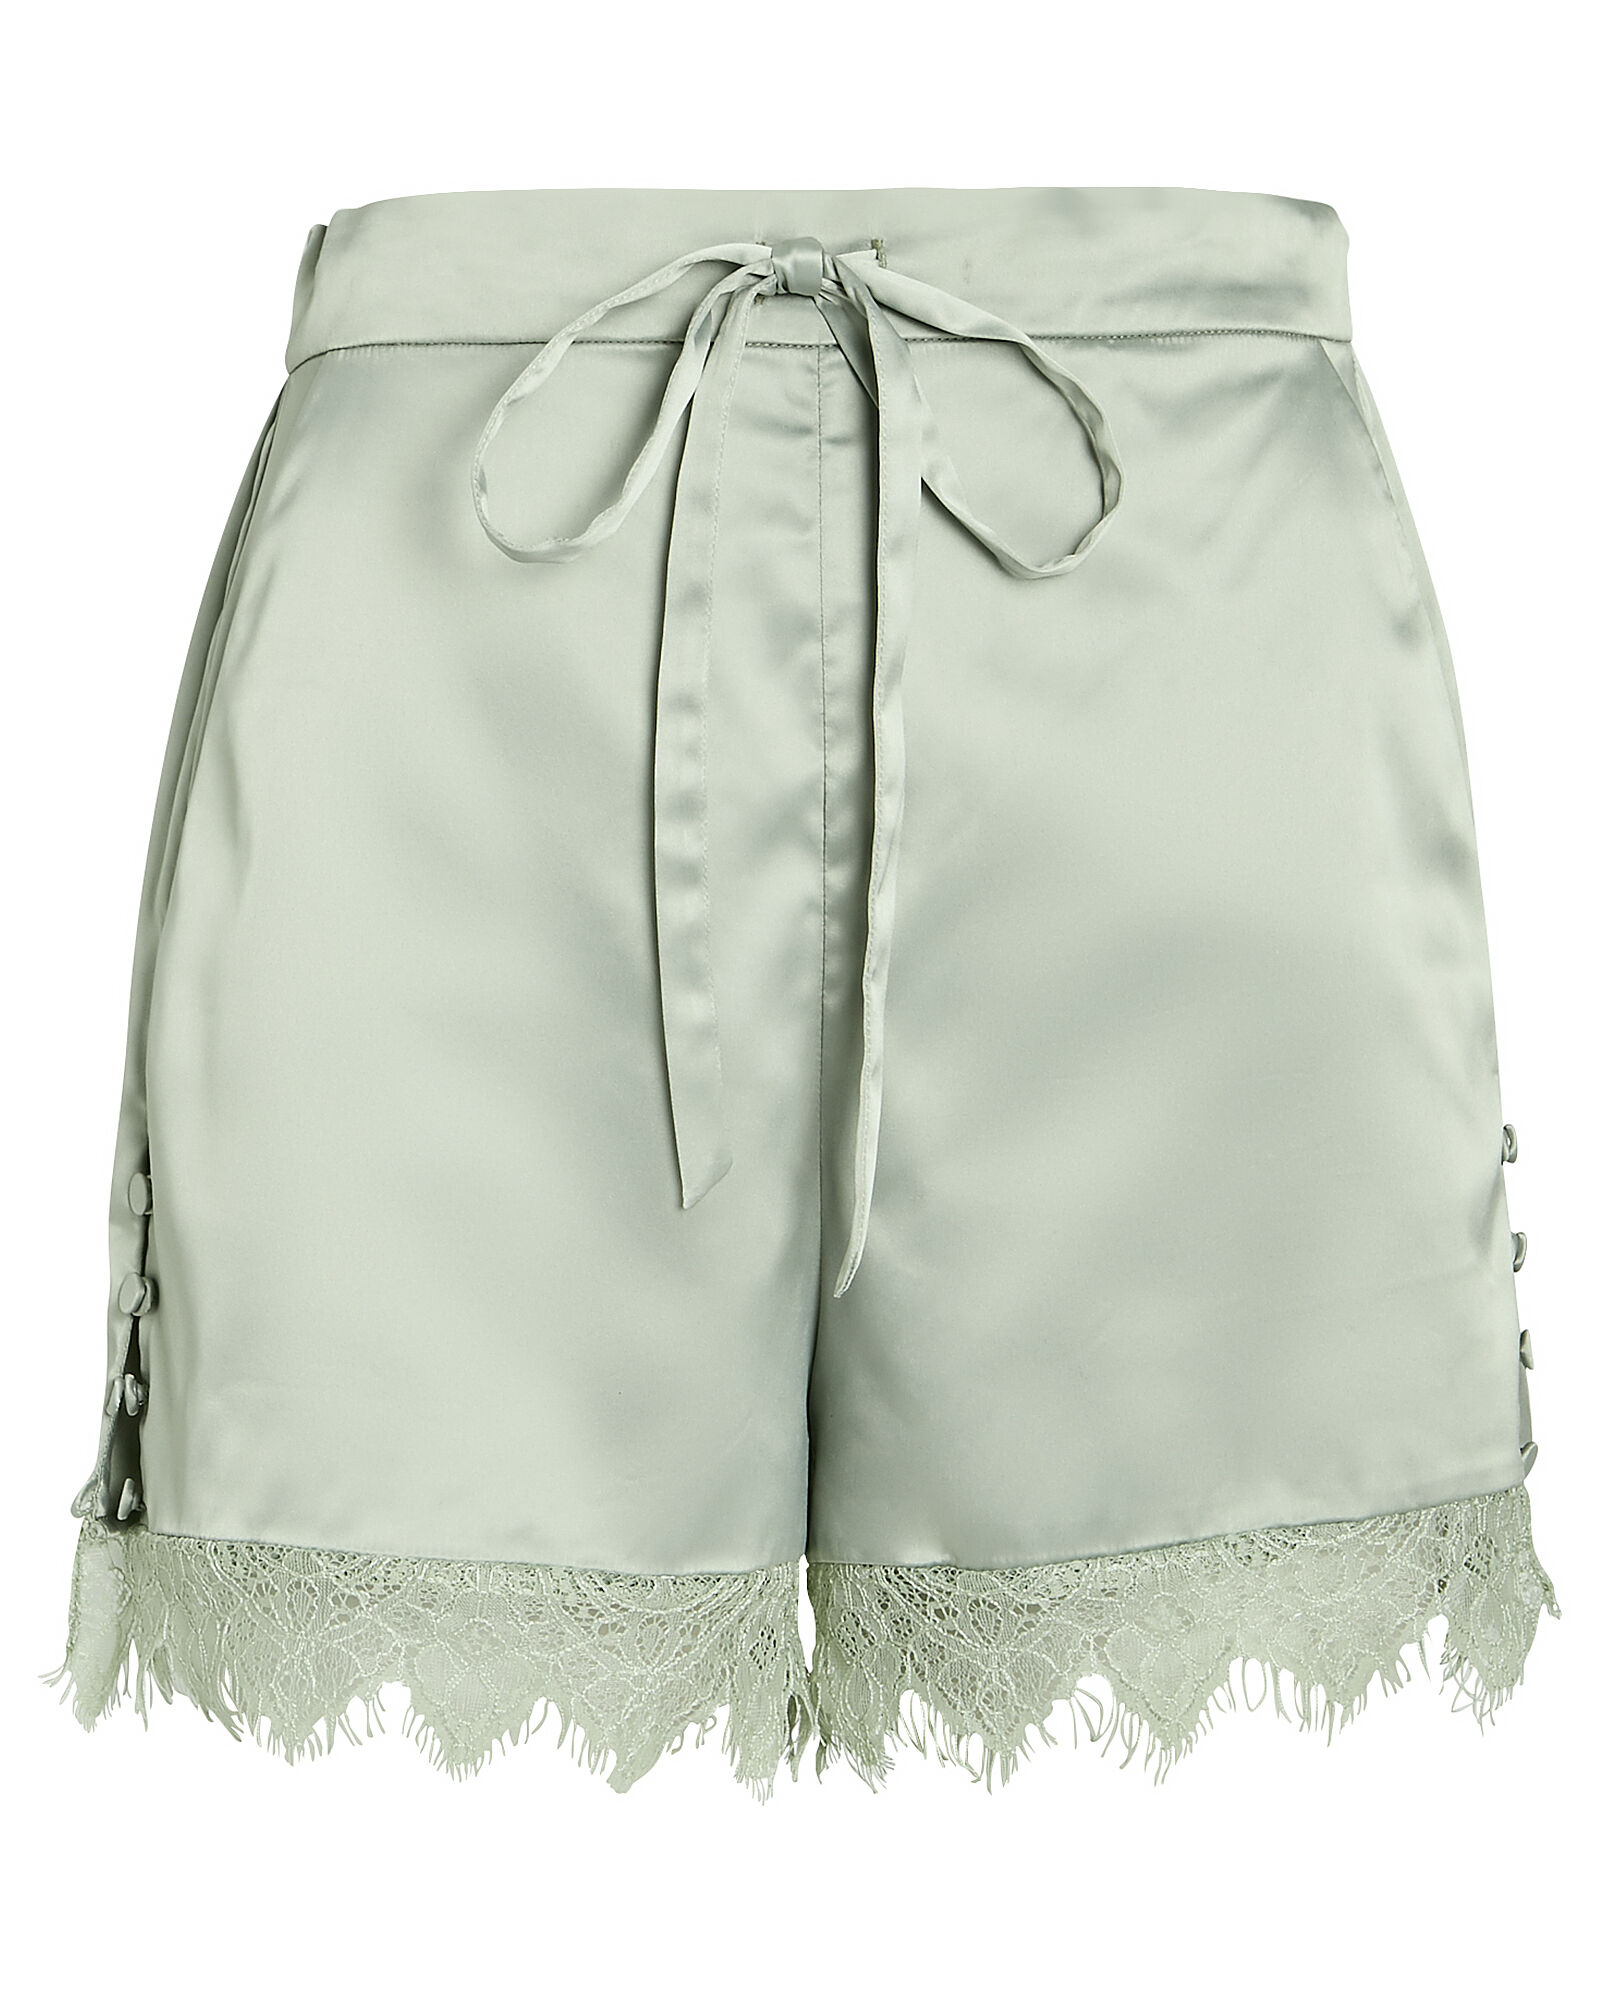 Army Charmeuse Tap Shorts, OLIVE/ARMY, hi-res